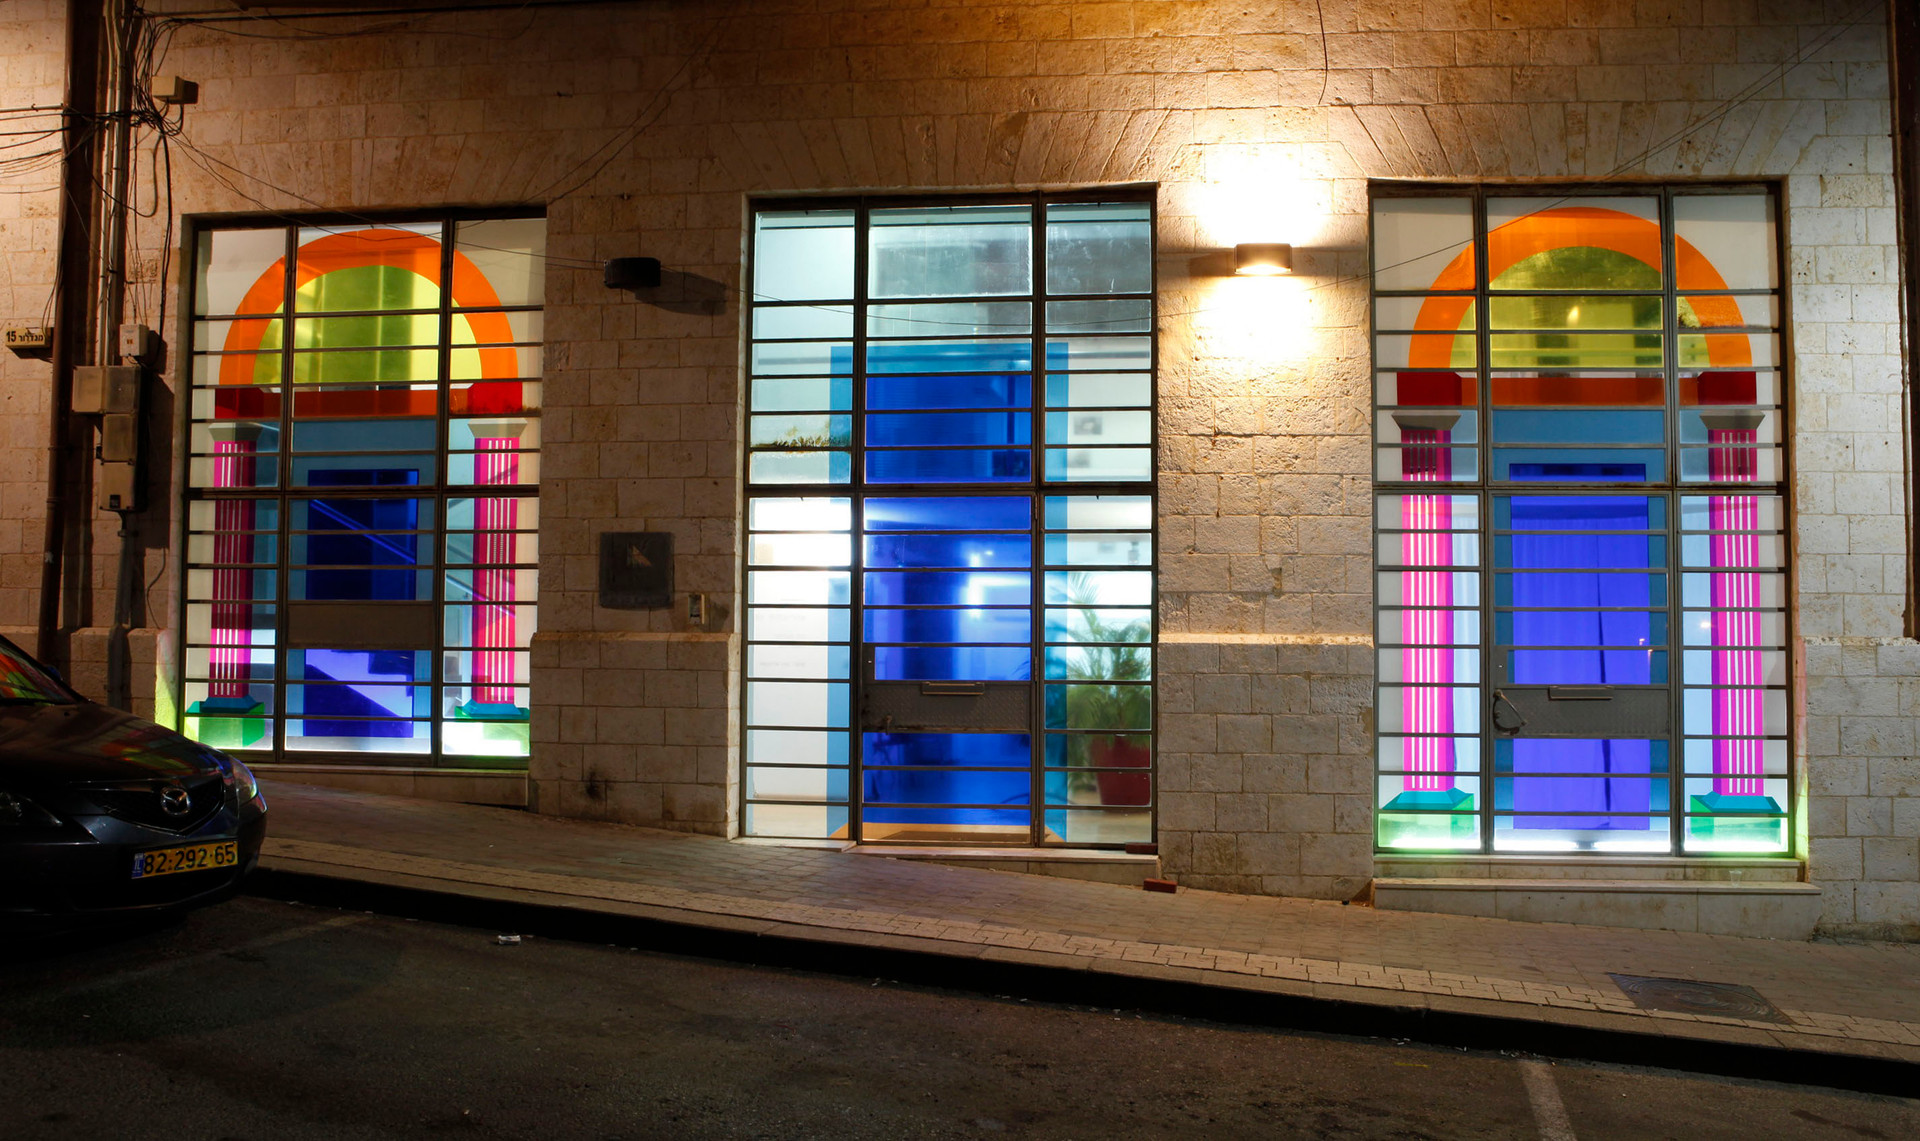 Architecture and The Every day, 2017 Two Person Show,The Architect's House, Tel-Aviv. Curated by Eran Eizenhamer